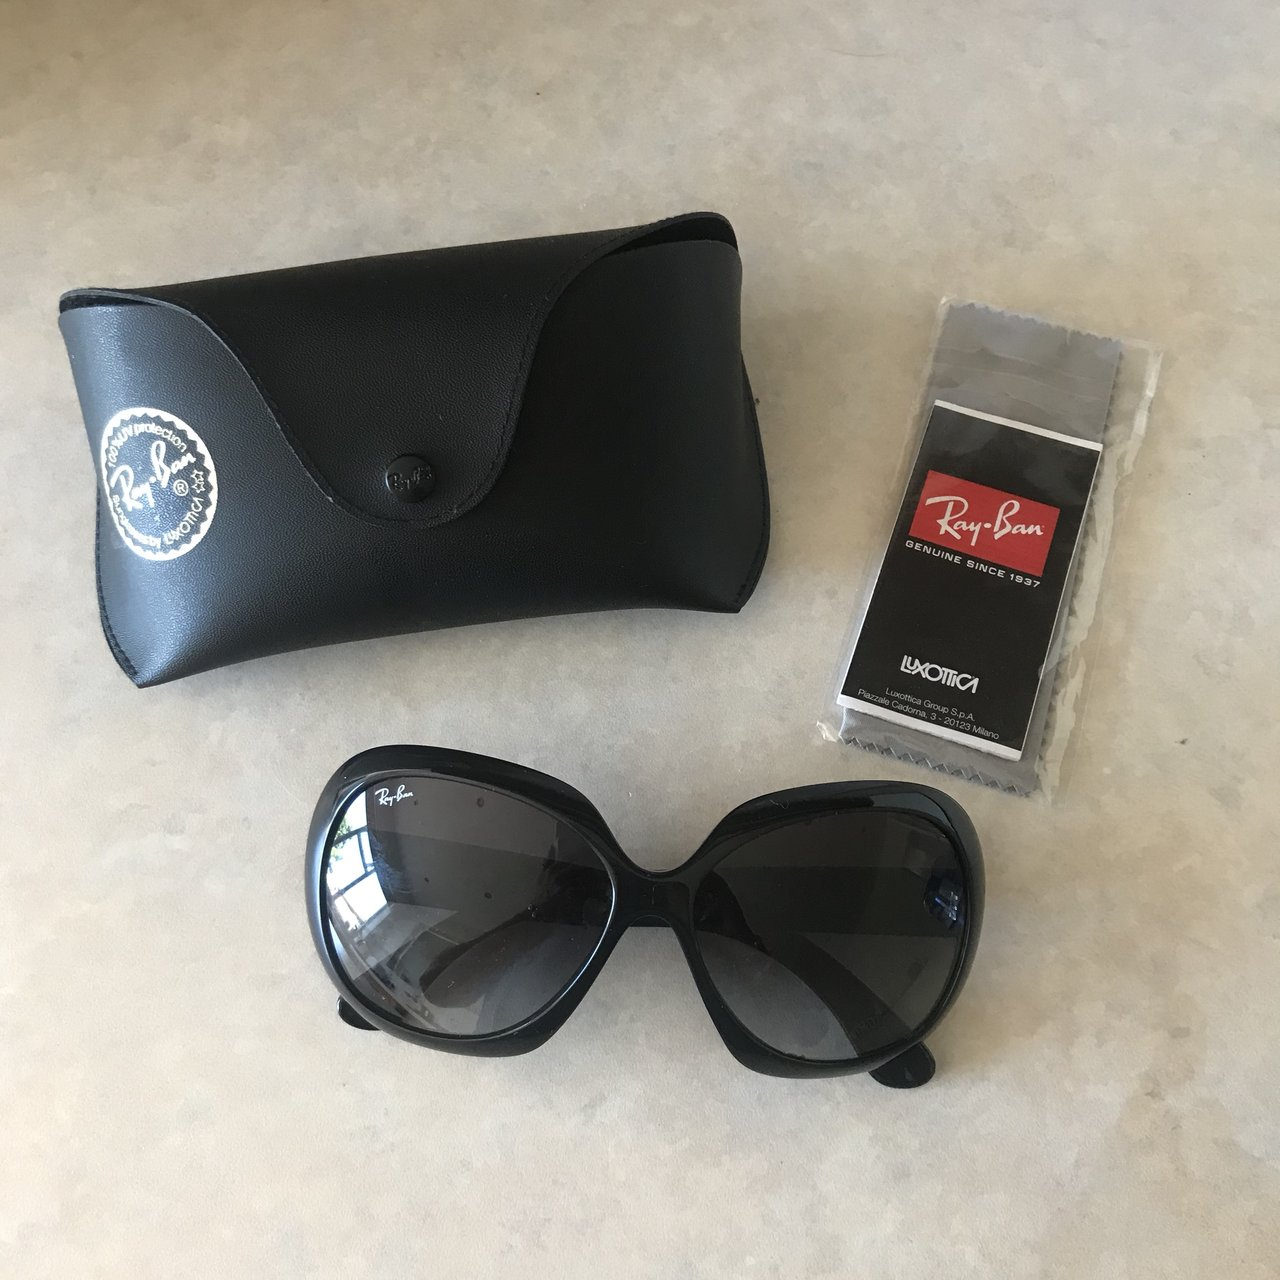 94a0753954e60 Depop Package Ohh Still Ban Ray Brand Make Sunglasses New In qOHxgSz7